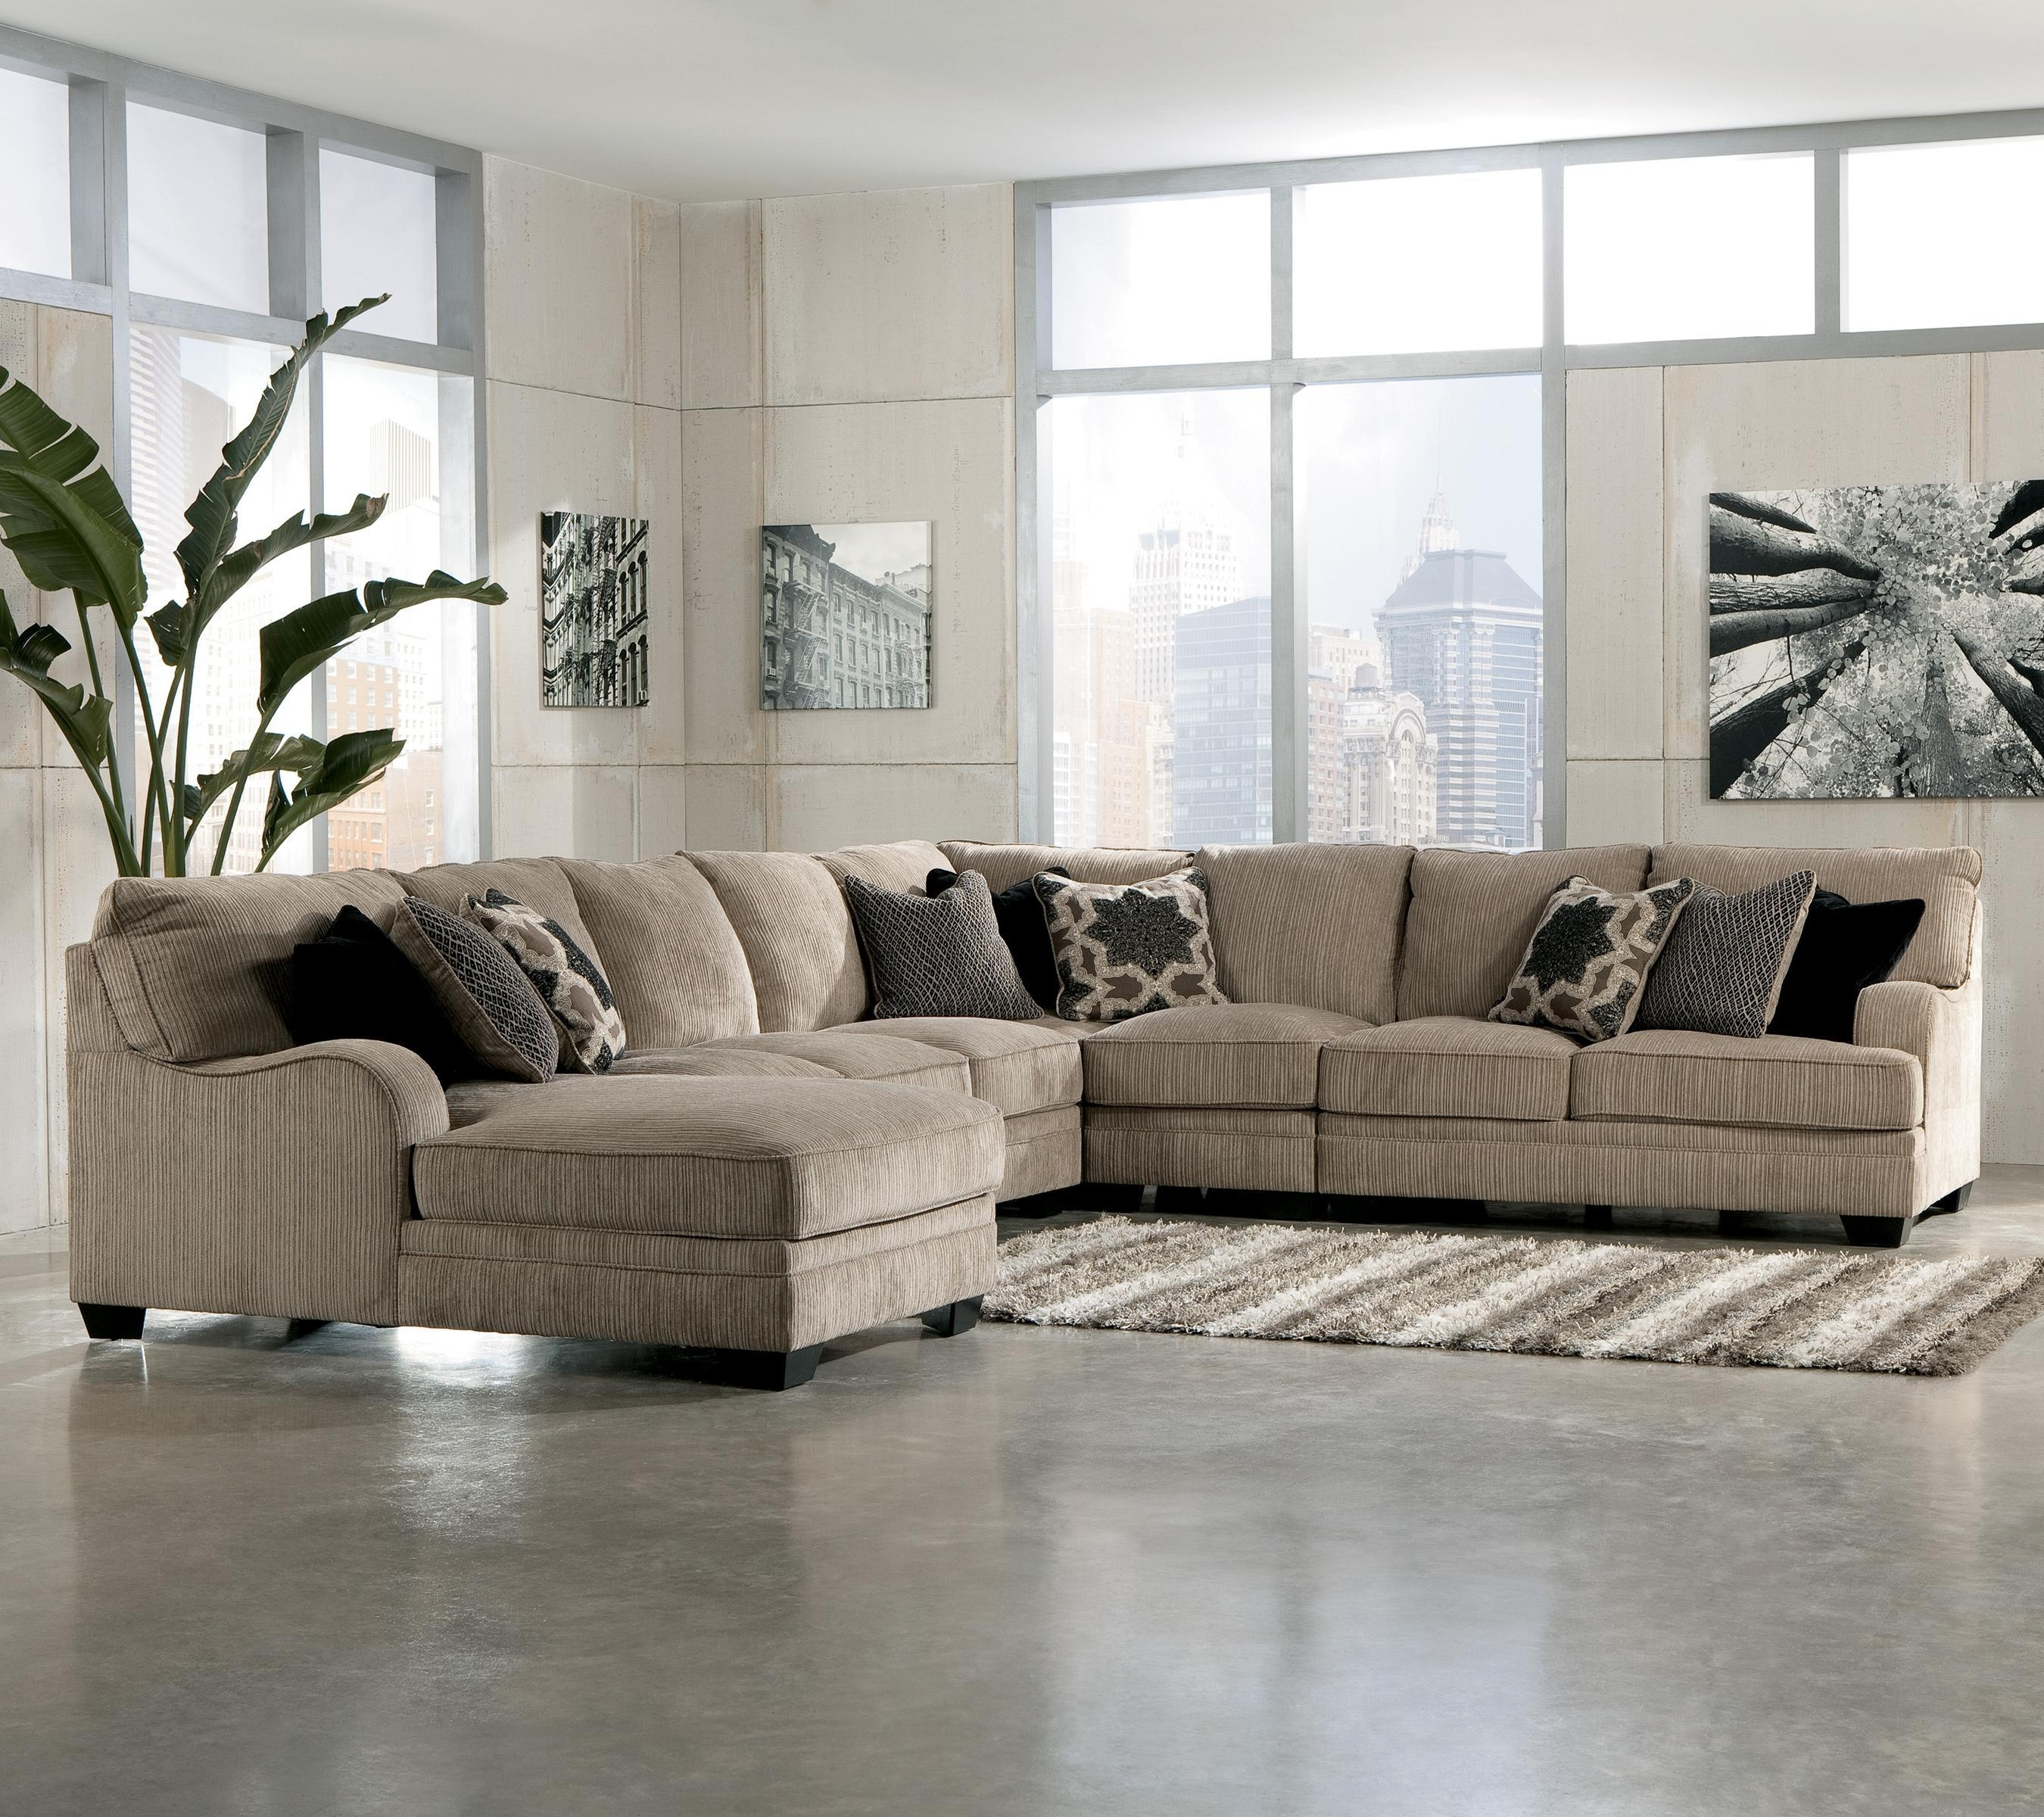 20 choices of sectional sofas portland sofa ideas. Black Bedroom Furniture Sets. Home Design Ideas